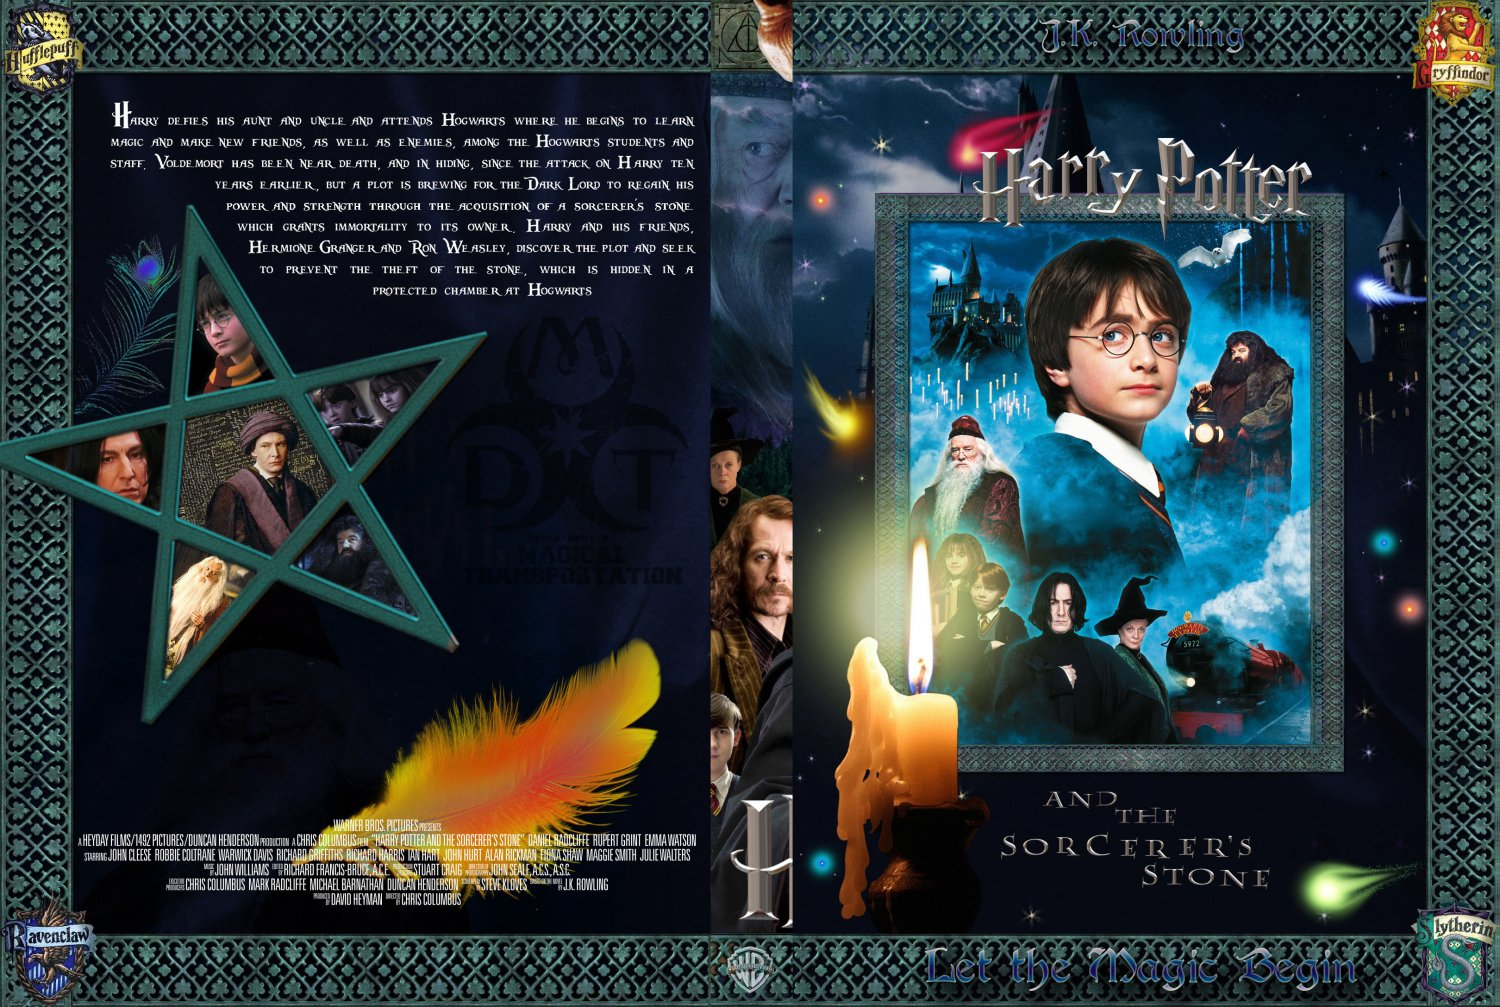 essays on harry potter and the philosophers stone Harry potter and the sorcerer's stone 2 pages 562 words august 2015 saved essays save your essays here so you can locate them quickly.